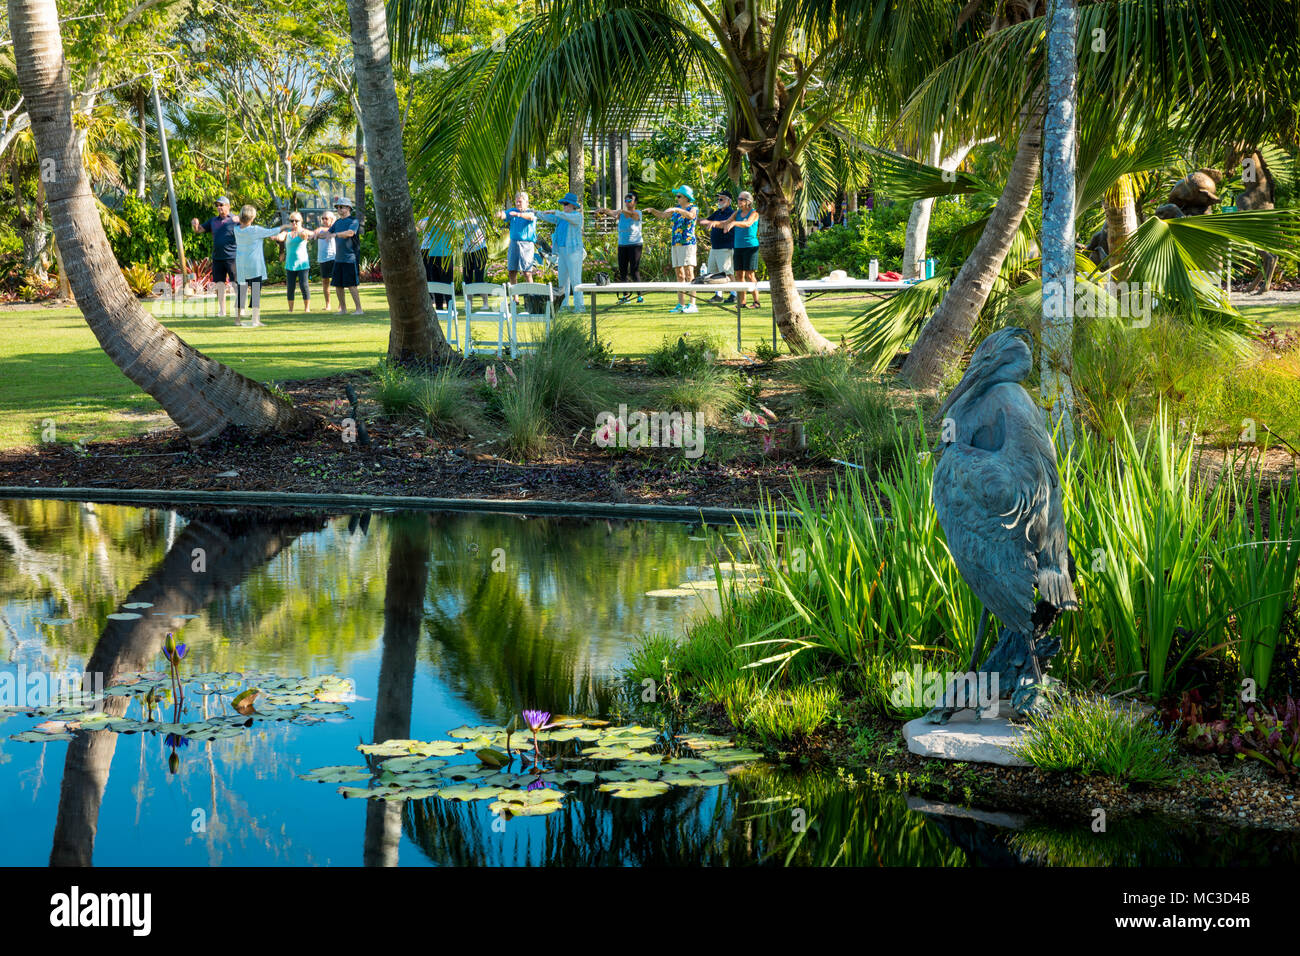 Tai Chi class on the lawn by a pond at Naples Botanical Gardens, Naples, Florida, USA - Stock Image